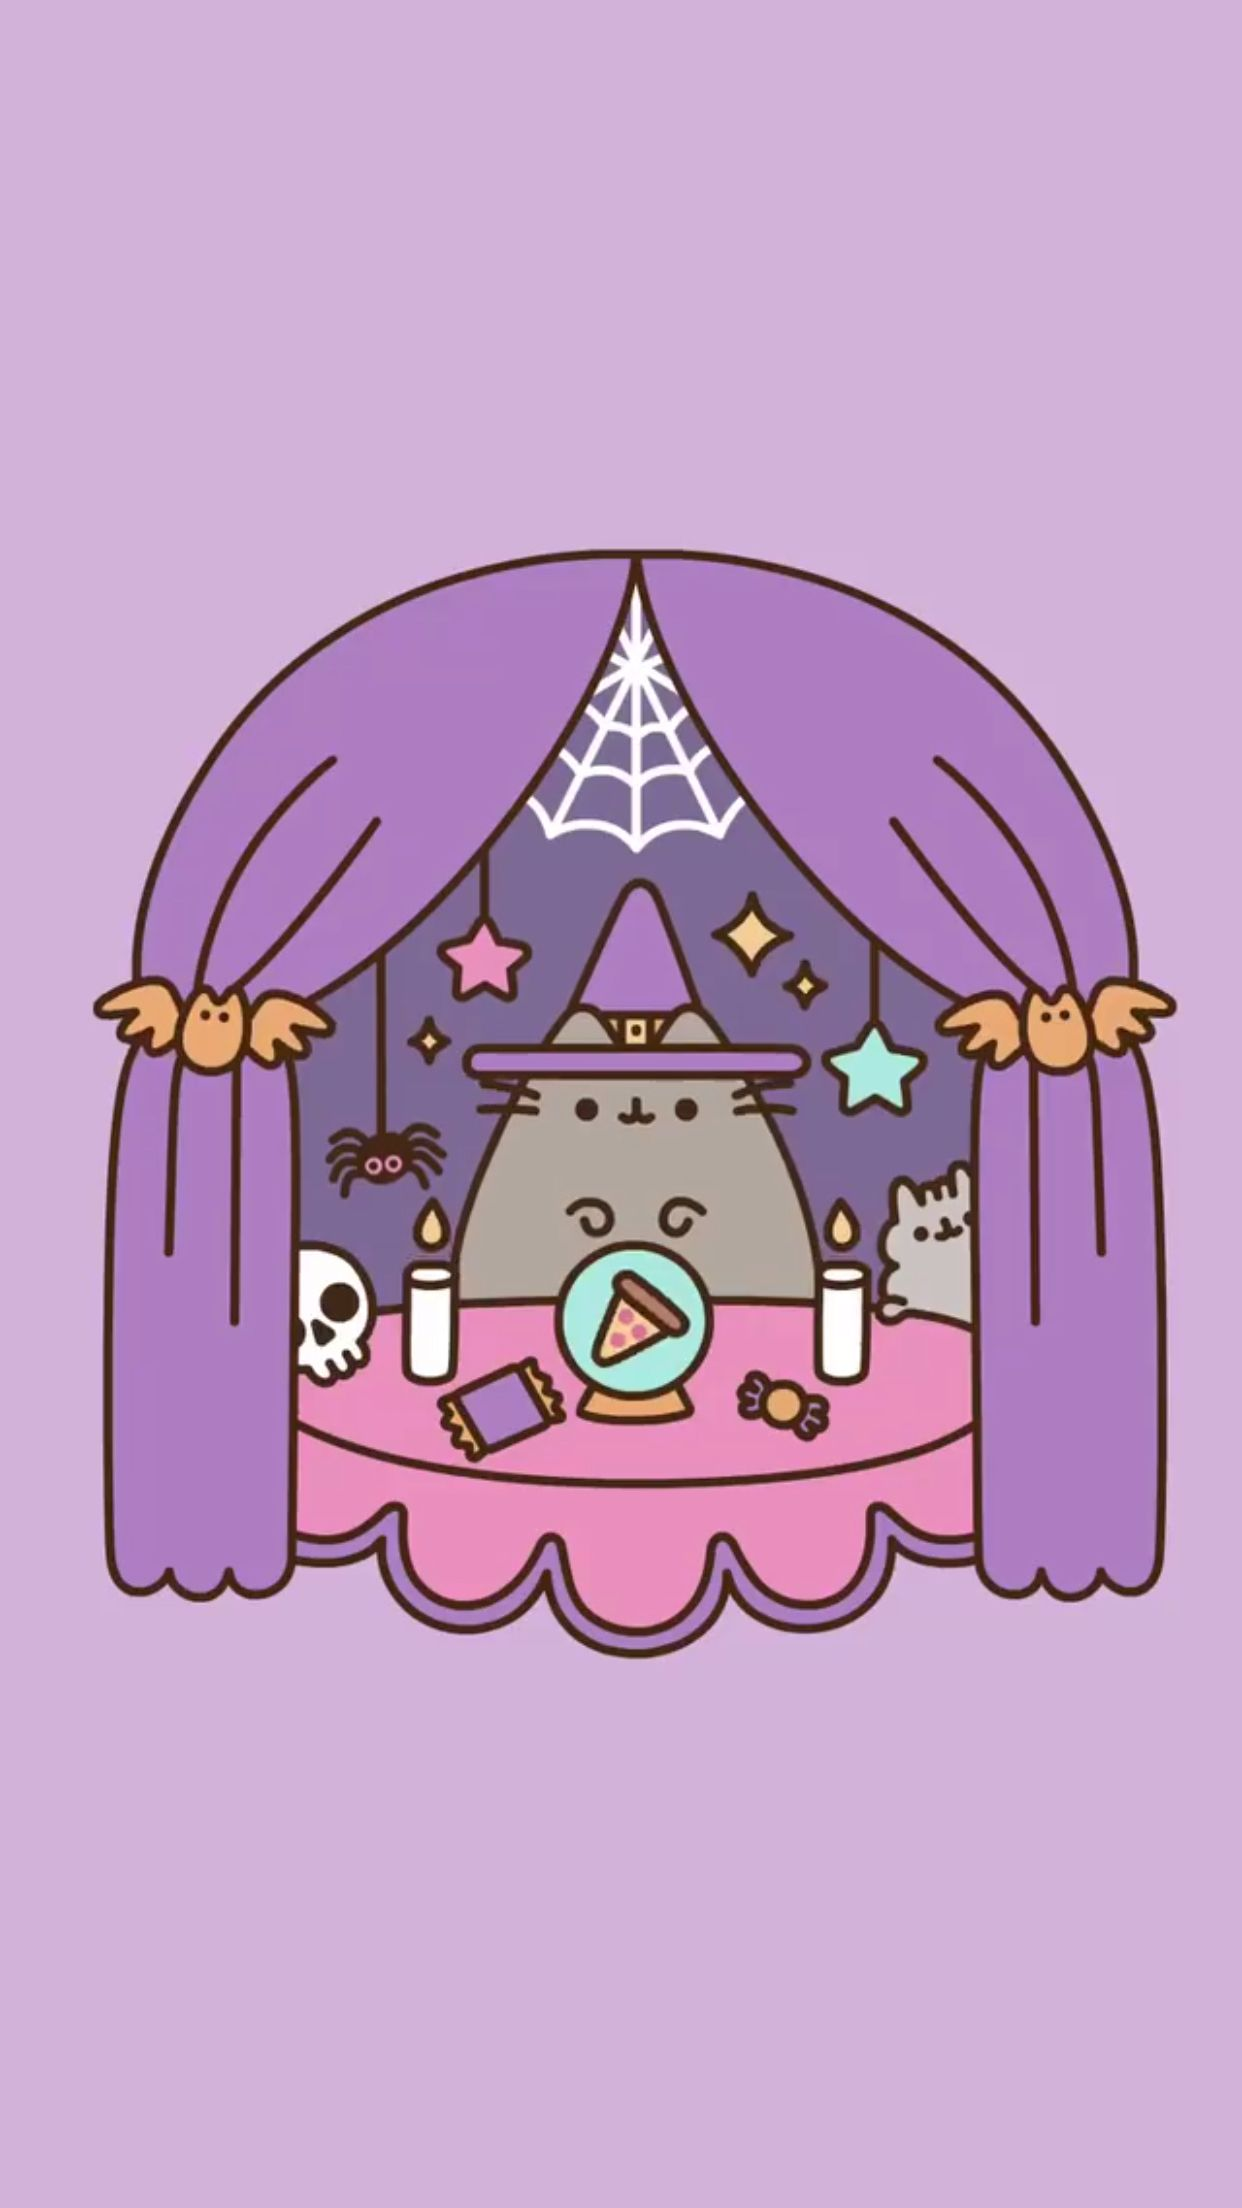 Pusheen Halloween Wallpaper Gatito Pusheen Imagenes De Pusheen Gatos Kawaii